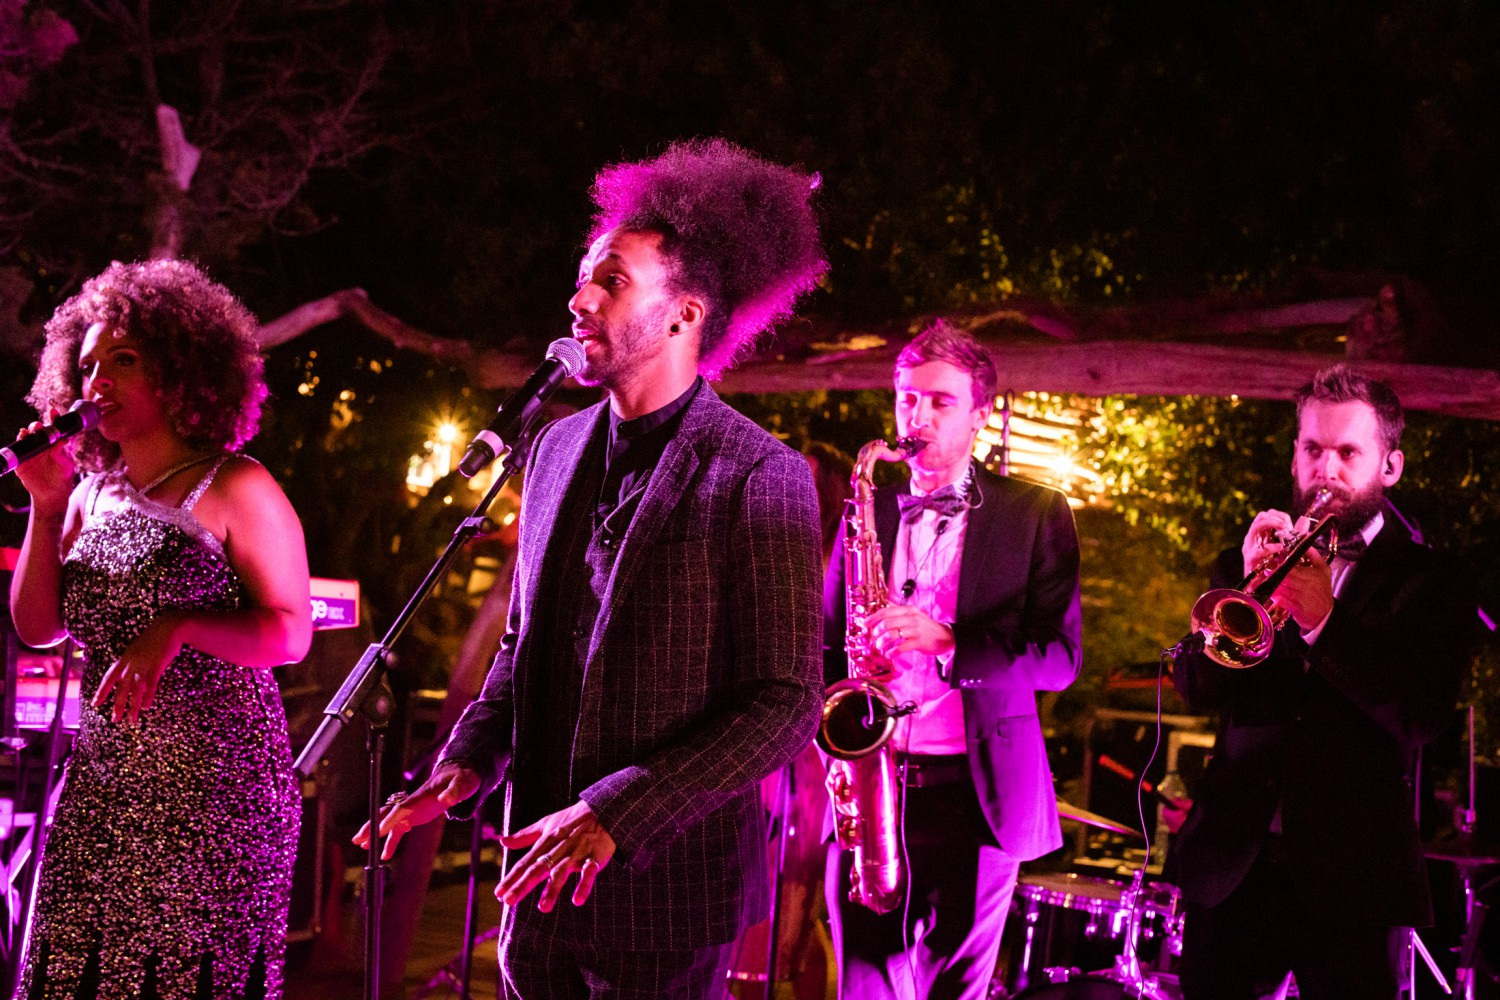 Littleton-Rose-Luxury-Destination-Wedding-Planner-Corsica-Justine-and-Tom-Live-Band.jpg